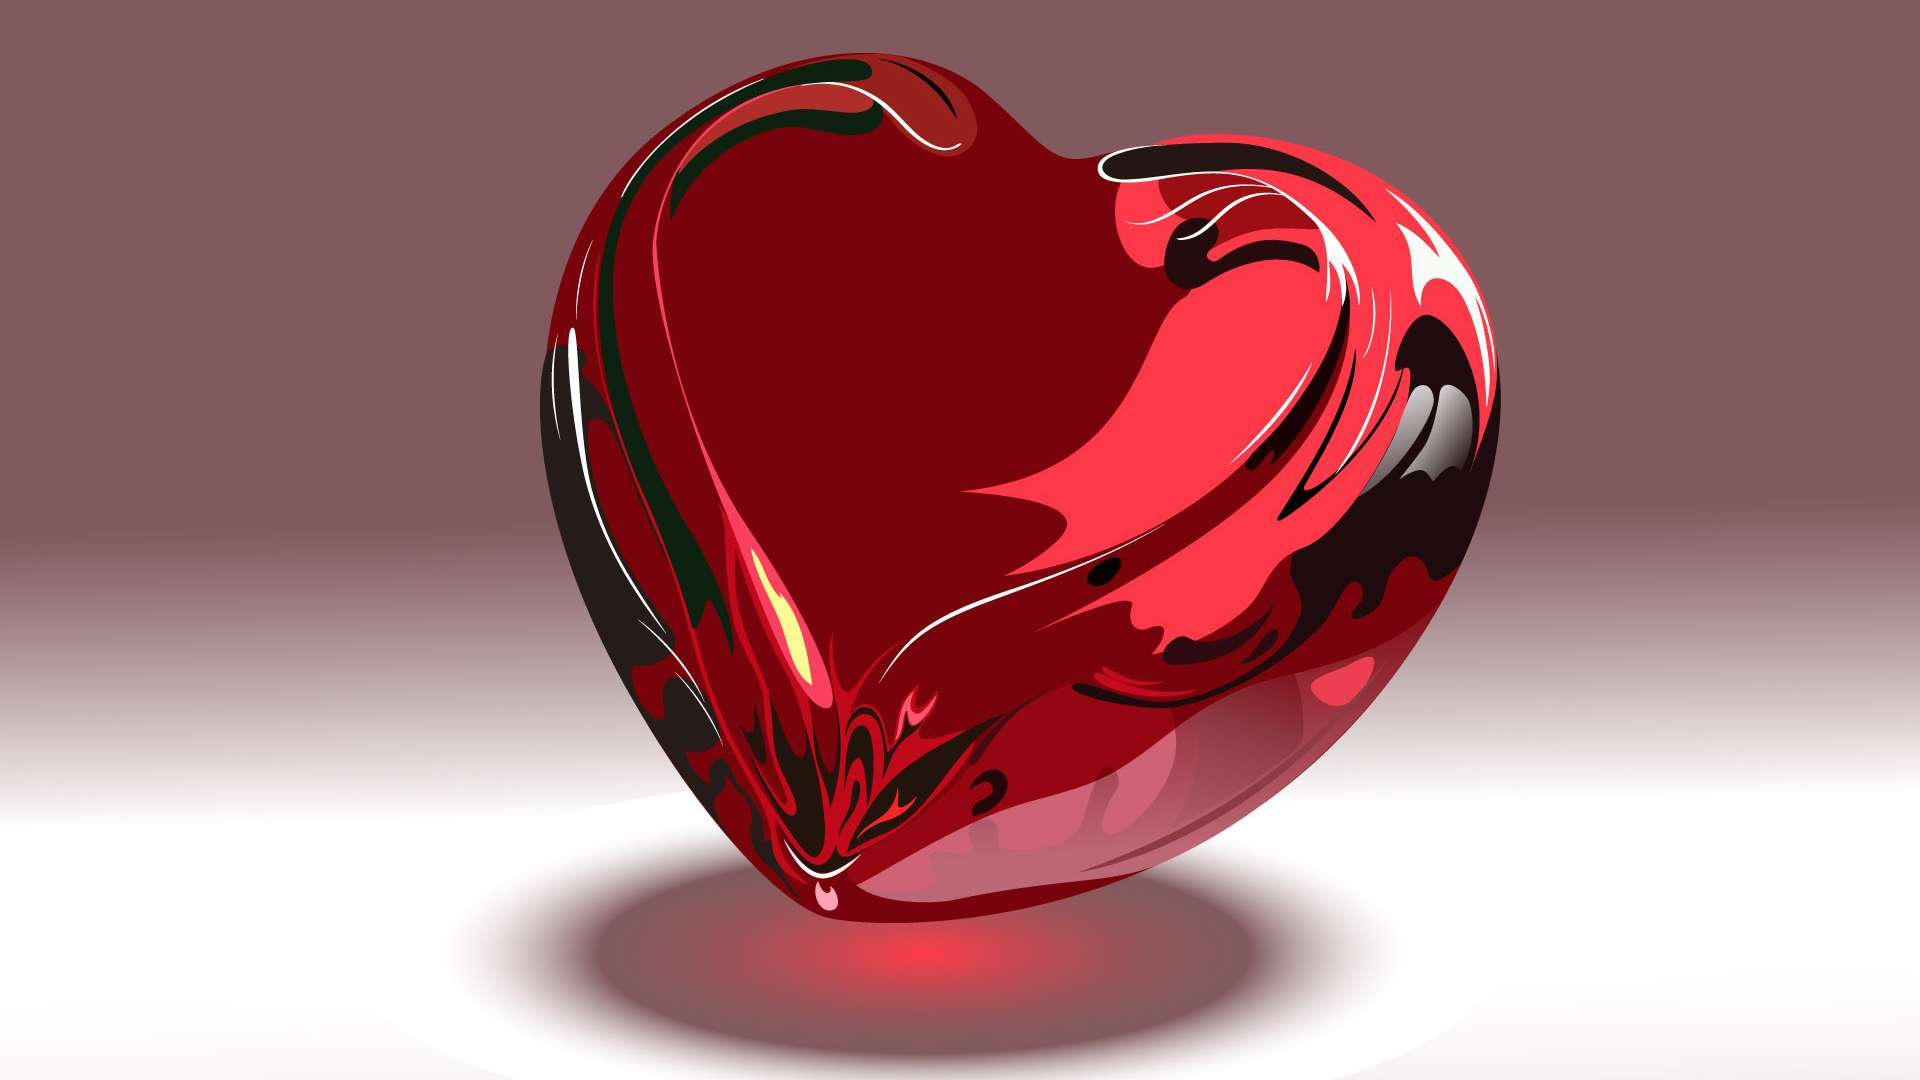 Download free HD Heart 3D Wallpaper, image